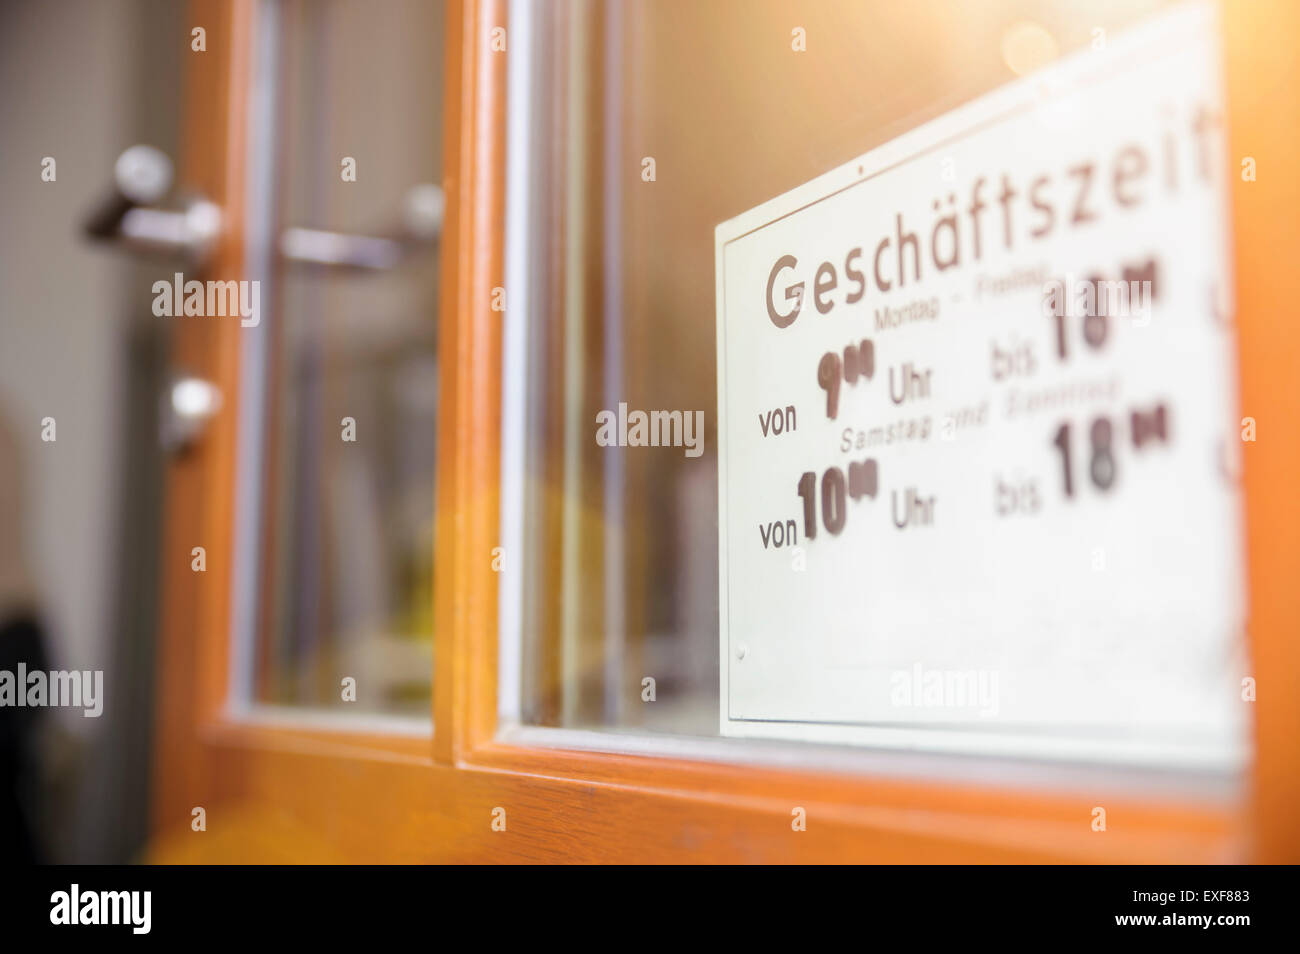 Opening hours sign on door of cafe - Stock Image